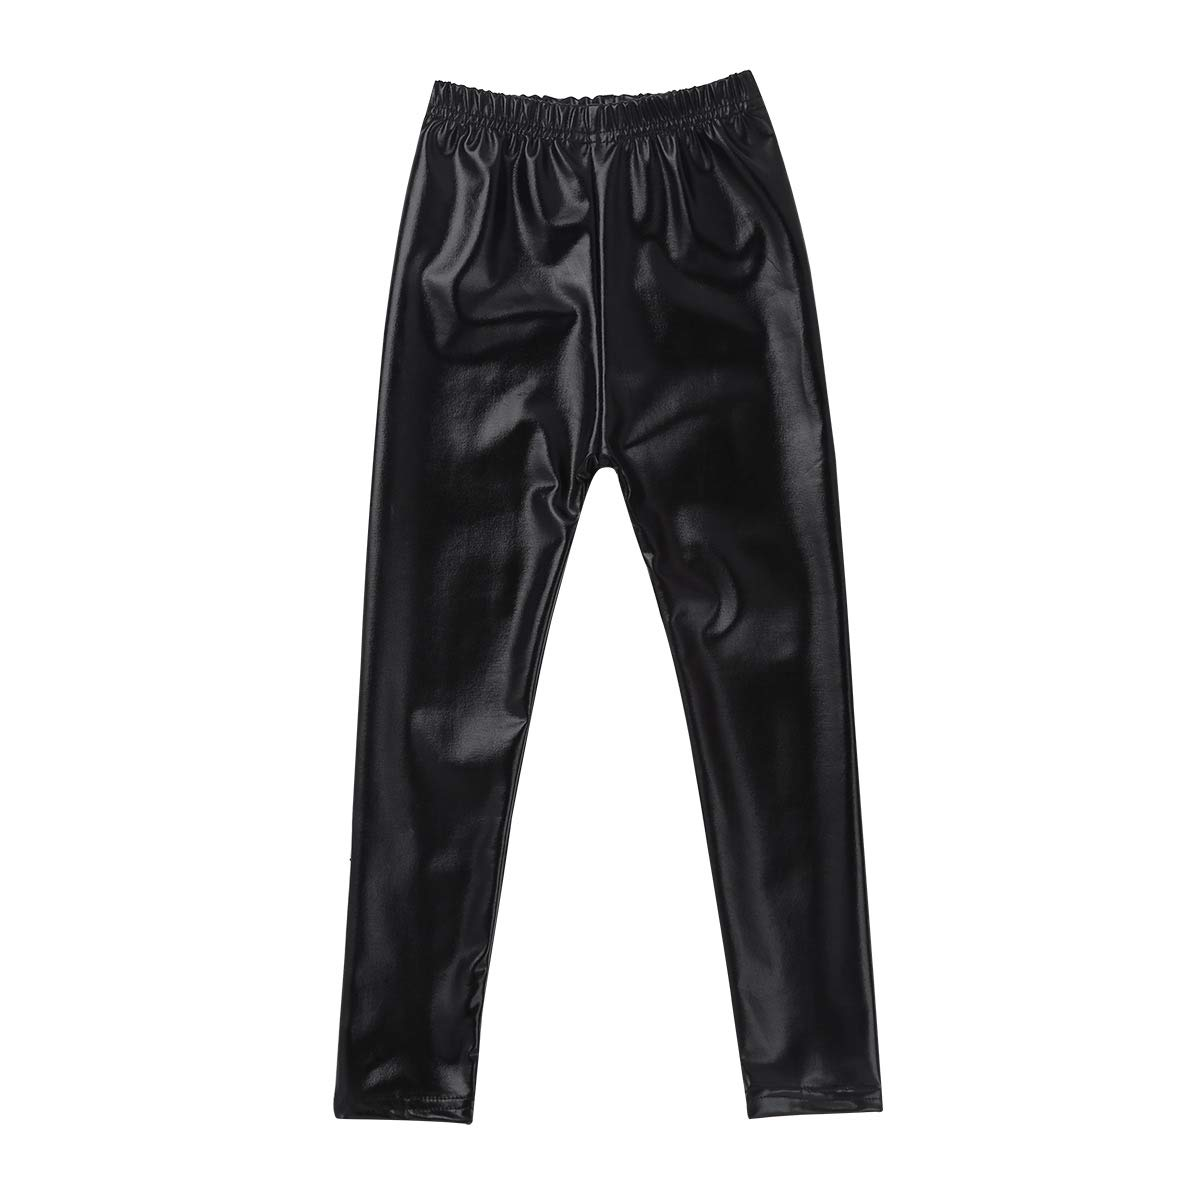 iEFiEL Kids Little Girls Stretchy Faux Leather Legging Pants Teens Shiny Metallic Trousers Tights for Party Holiday Casual